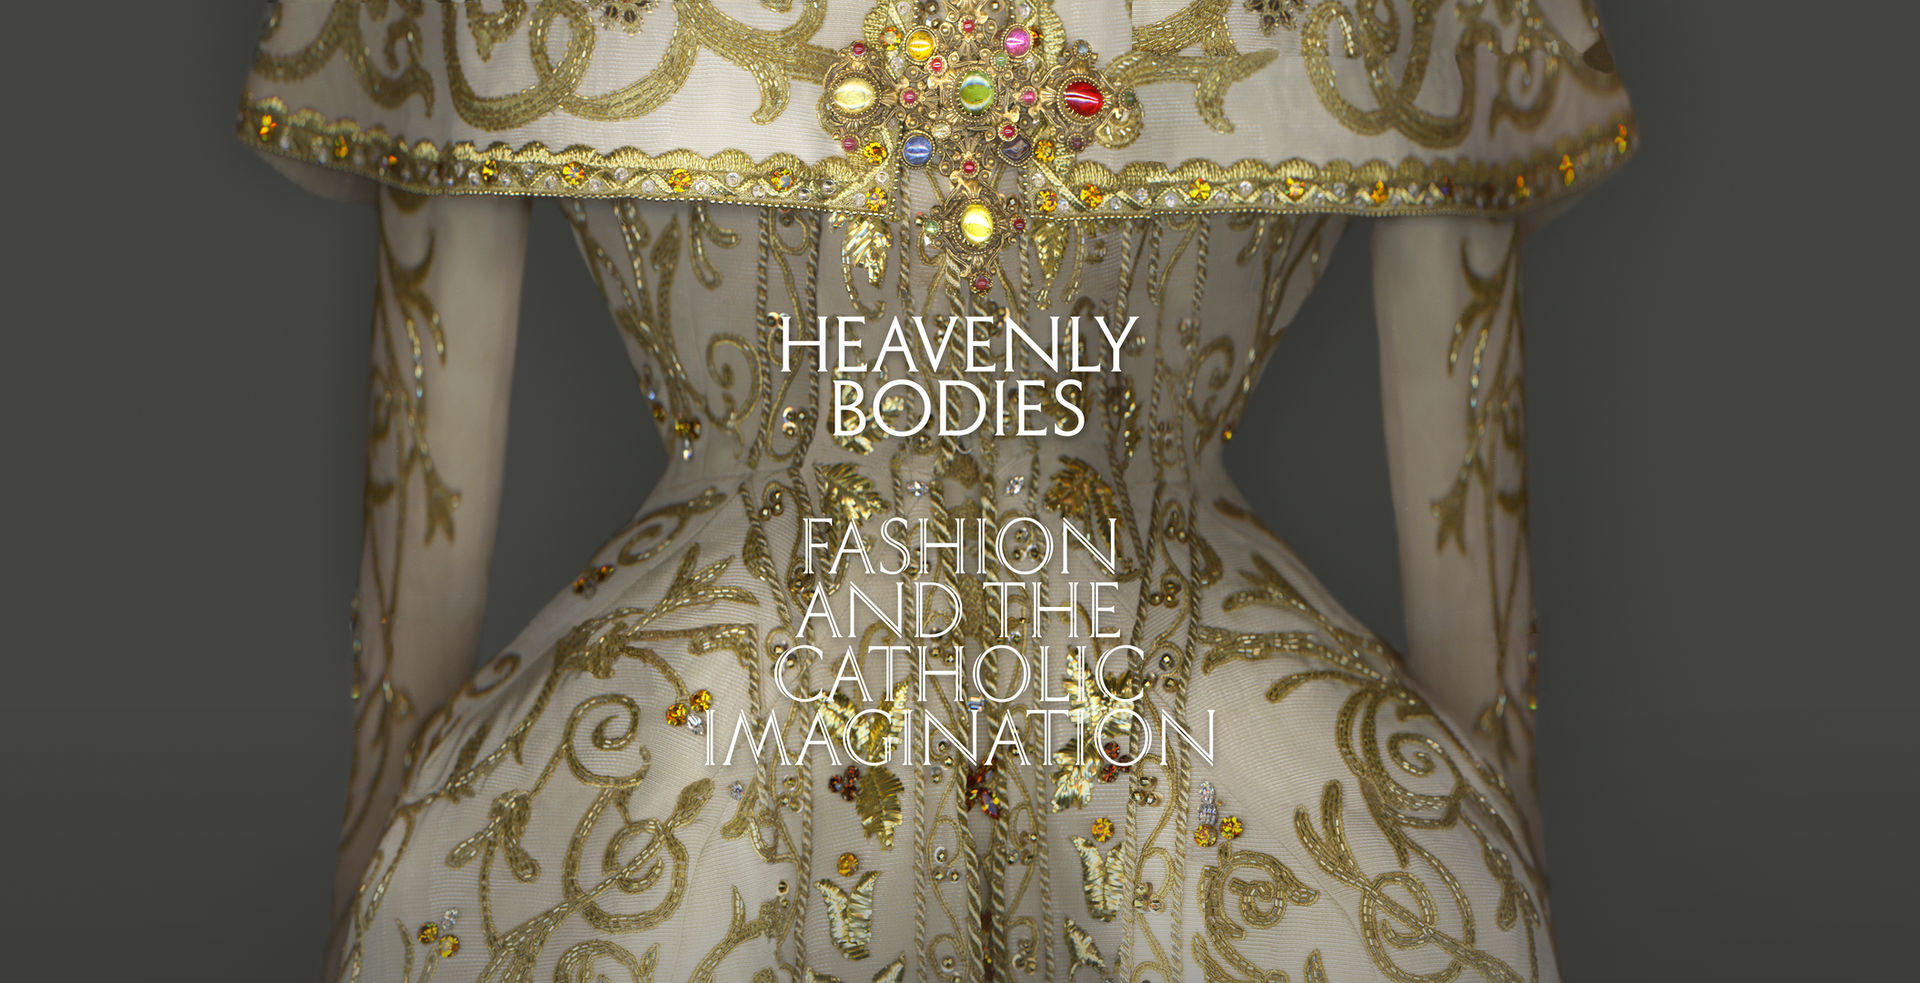 18cbf39b948 Heavenly Bodies  Fashion and the Catholic Imagination. At The Met Fifth  Avenue and The Met Cloisters. May 10–October 8